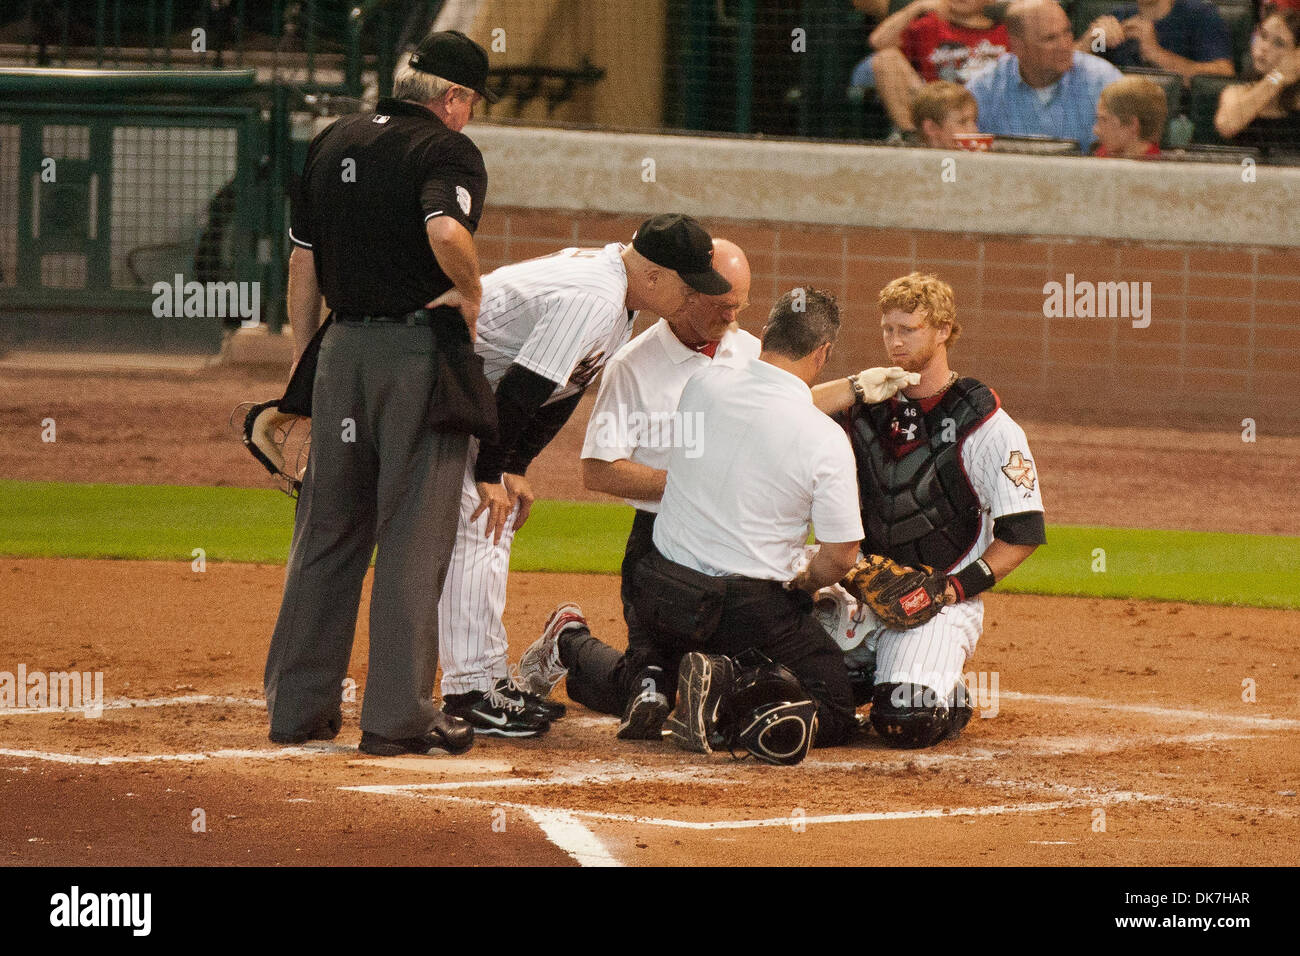 June 24, 2011 - Houston, Texas, U.S - Houston Astros Catcher J.R. Towles (46) is being looked at by Houston Astros Manager Brad Mills (2), Astros Trainers, and Home-plate Umpire Brian Gorman. Towles left the game in the top of the 3rd inning with chin lacerations, he received 11 stitches in his chin. Tampa Bay Rays beat the Houston Astros 5 - 1 at Minute Maid Park in Houston Texas. - Stock Image